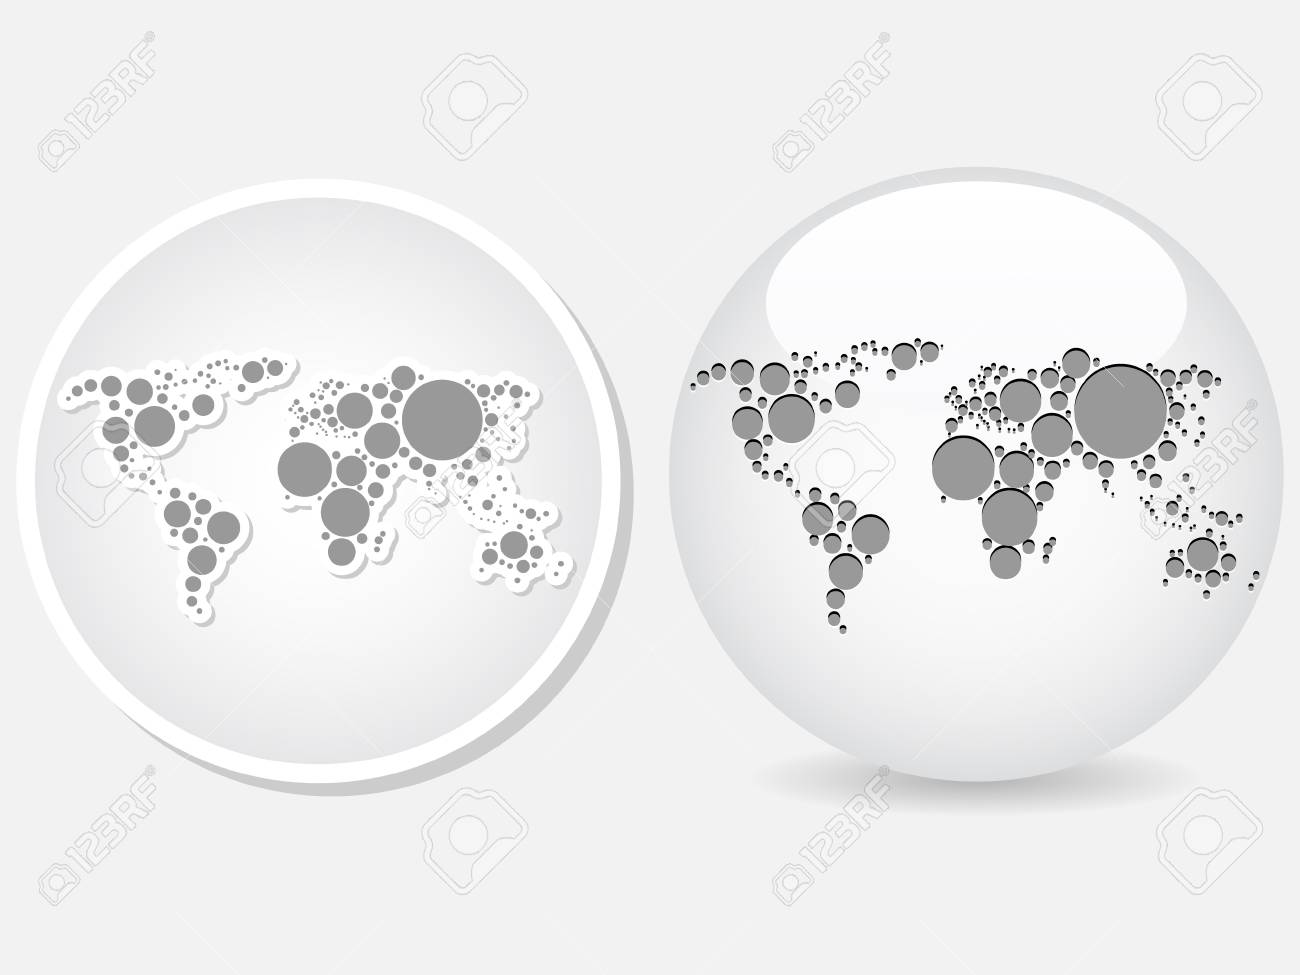 World map icon royalty free cliparts vectors and stock vector world map icon gumiabroncs Gallery